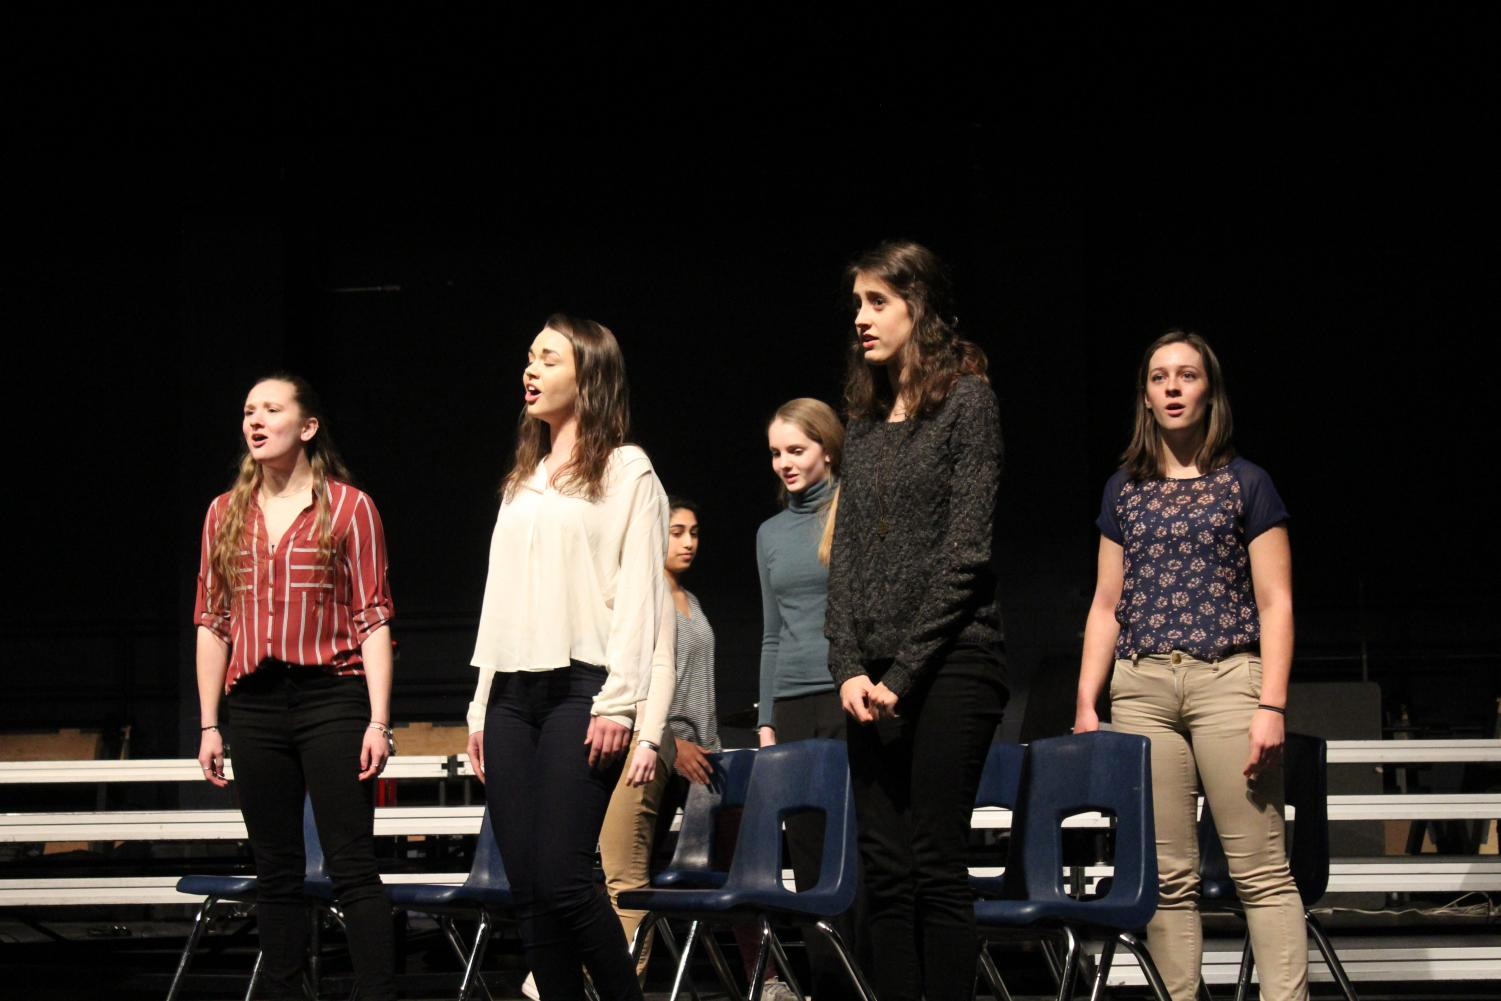 Speech members perform an exerpt from Sister Act the musical. Camryn McPherson Photo.